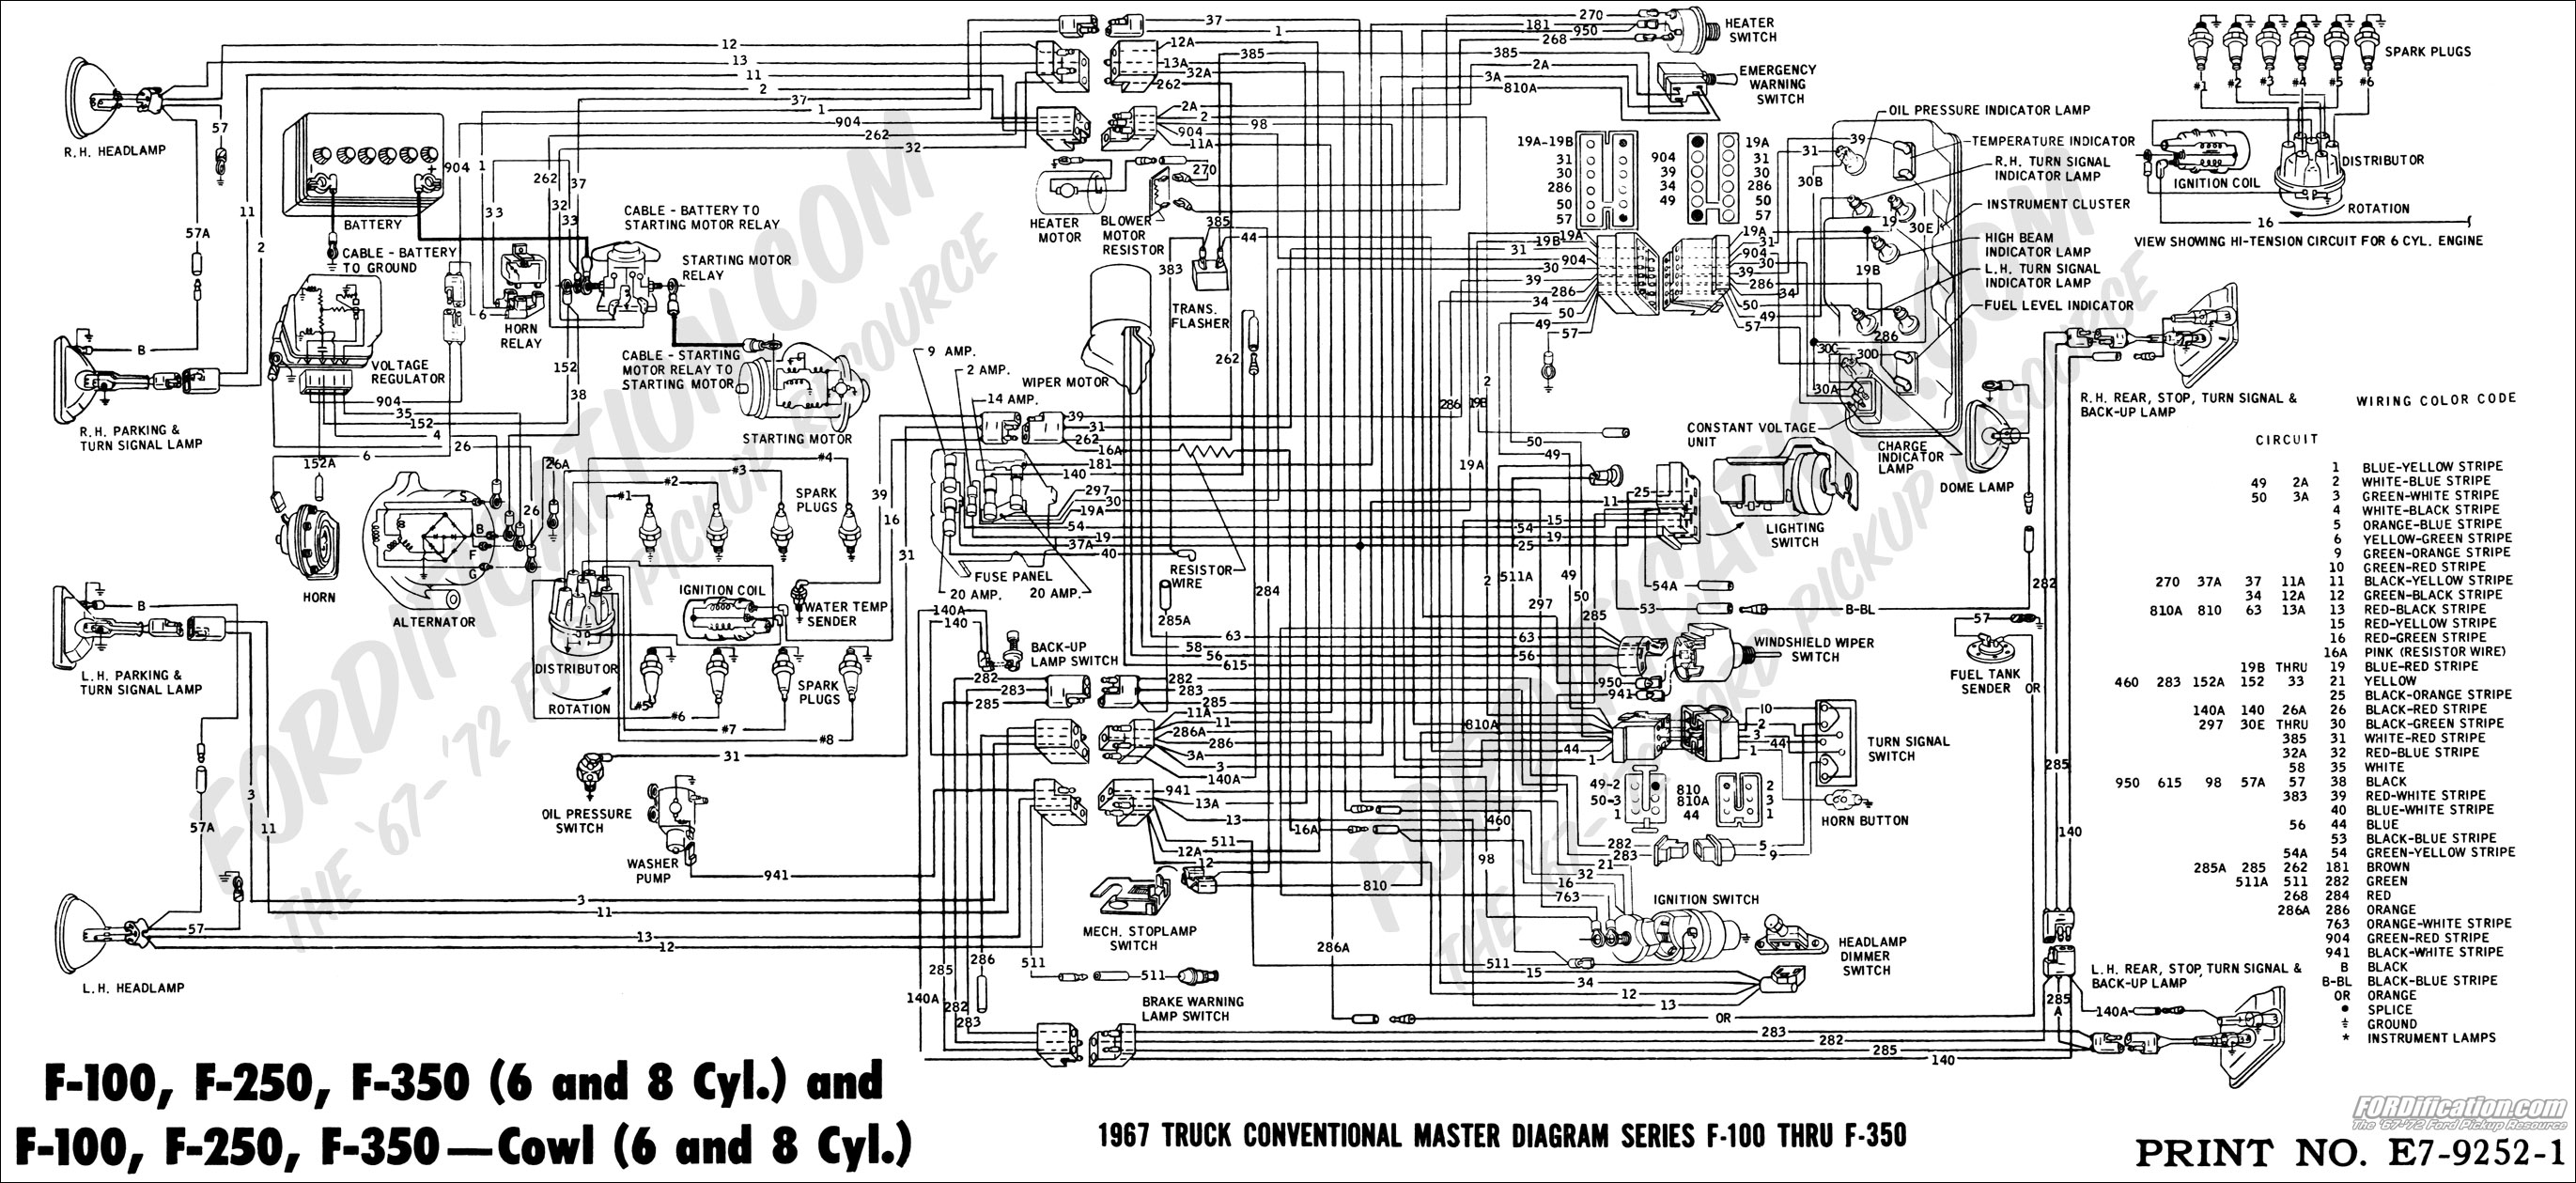 67masterdiagram ford truck technical drawings and schematics section h wiring wiring diagram for ford f150 2004 radio at alyssarenee.co